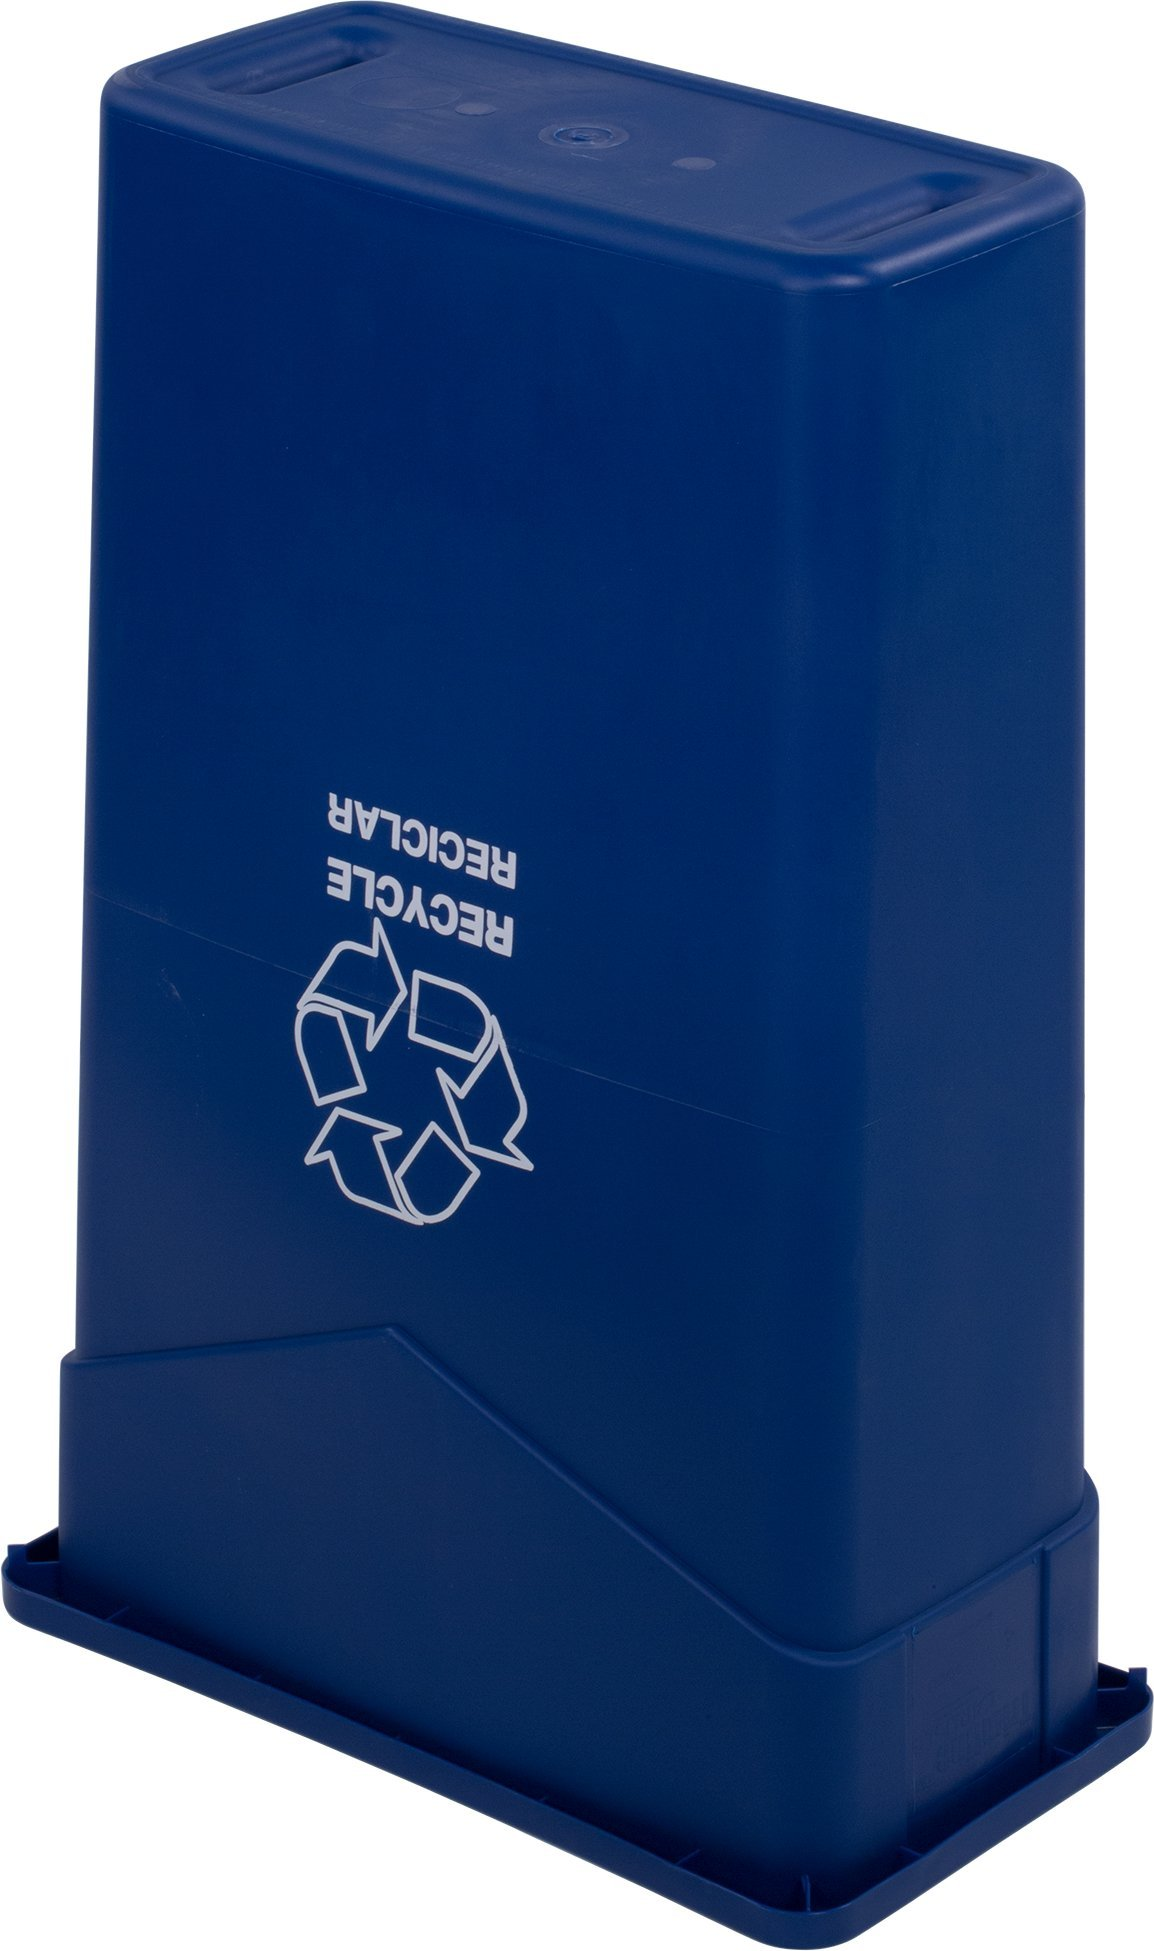 Carlisle 342023REC14 TrimLine LLDPE Recycle Can, 23 Gallon Capacity, 20'' Length x 11'' Width x 29.88'' Height, Blue by Carlisle (Image #4)